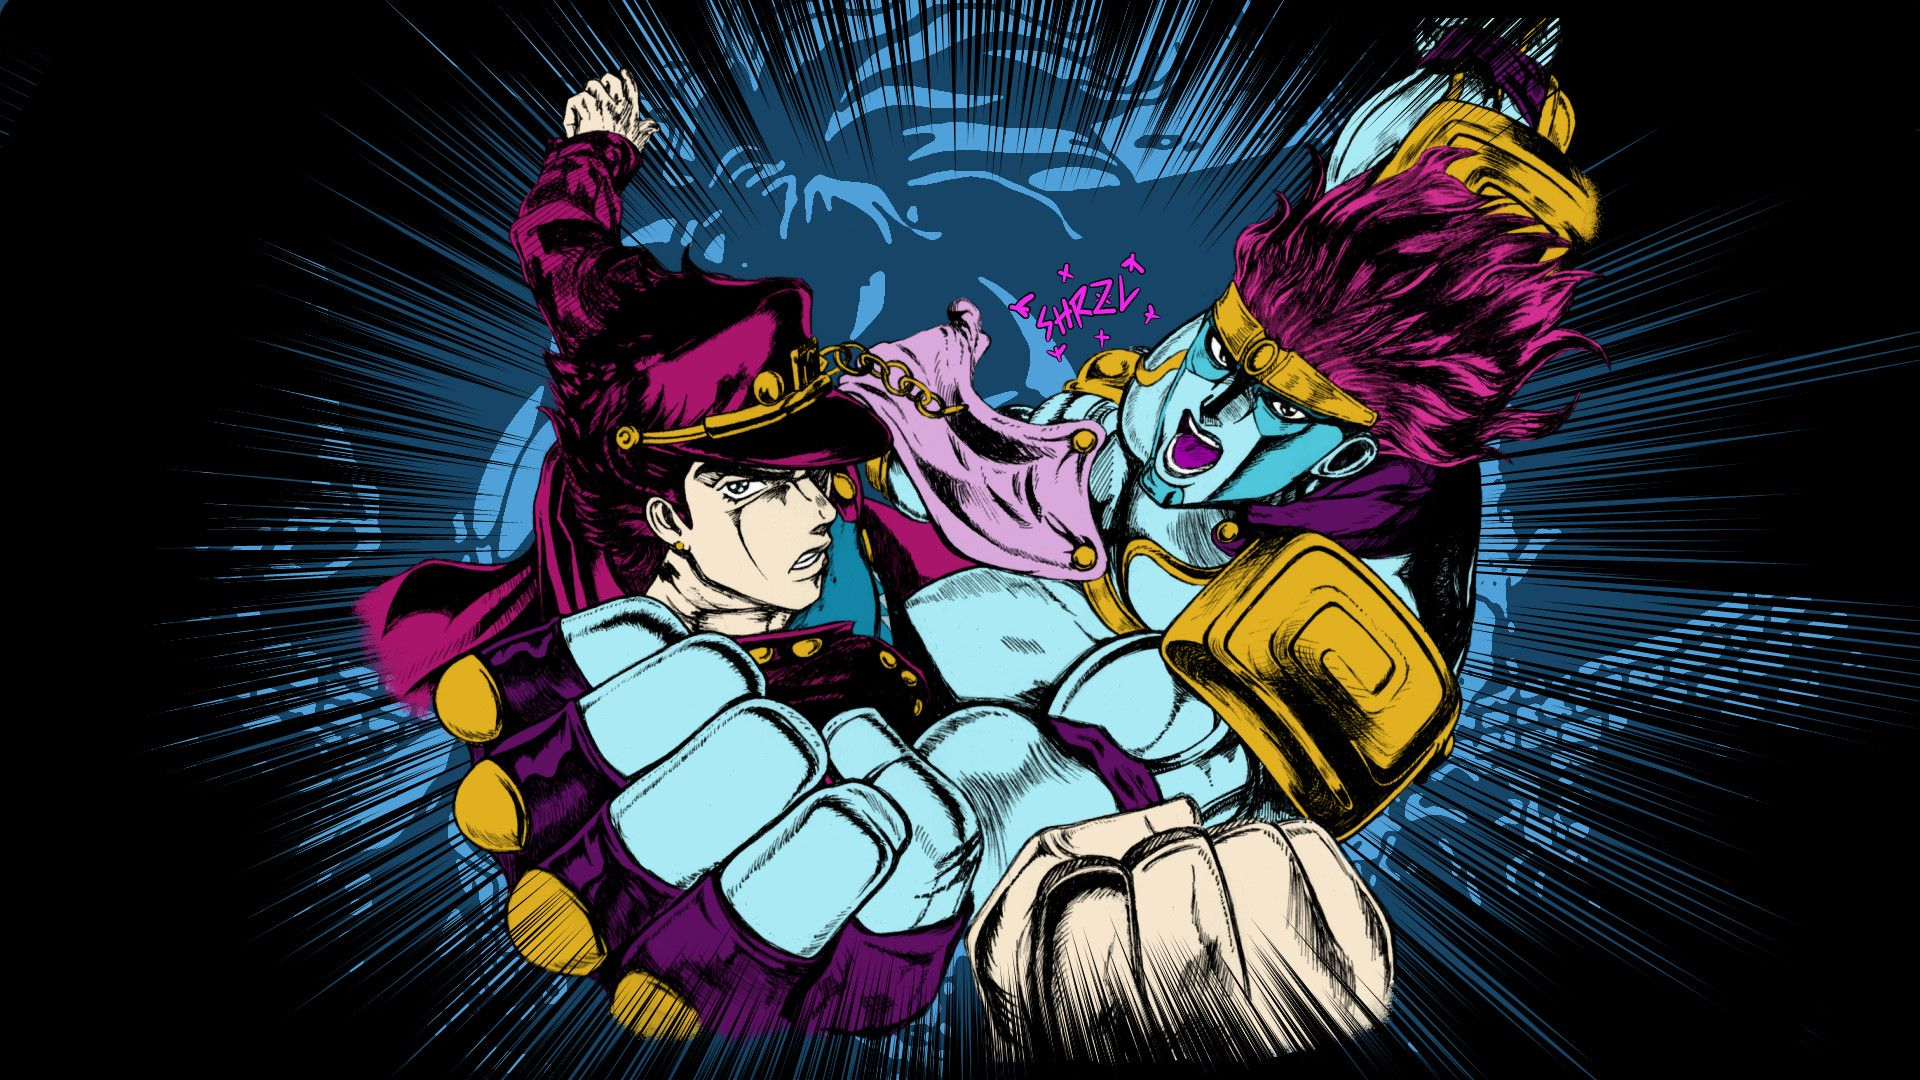 Res 1920x1080 Jotaro And Star Platinum Wallpaper By